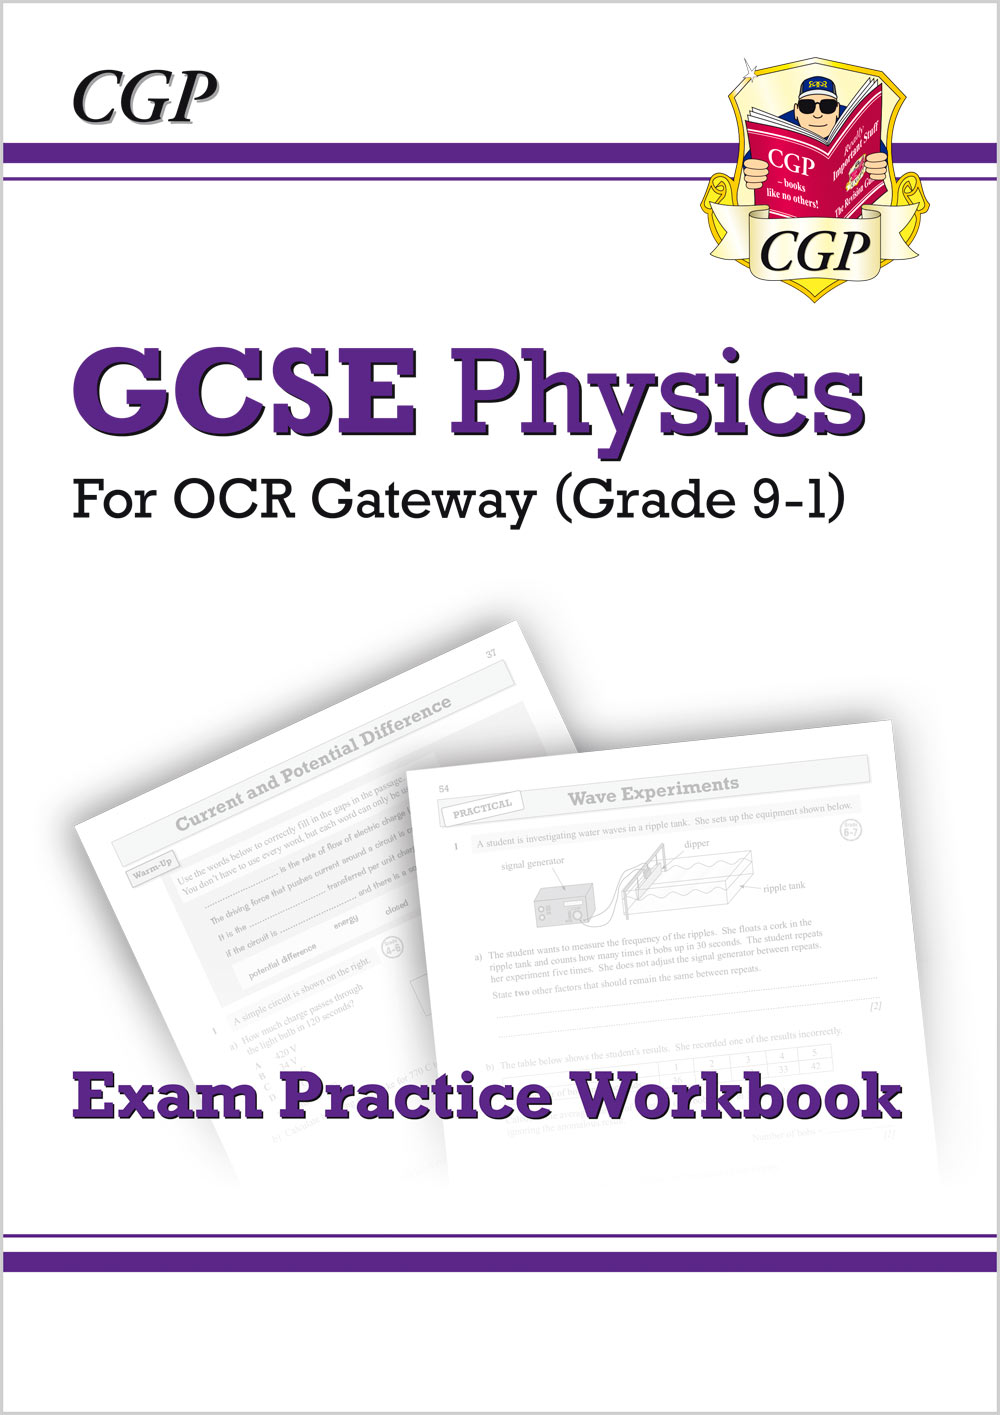 PRQ41 - Grade 9-1 GCSE Physics: OCR Gateway Exam Practice Workbook